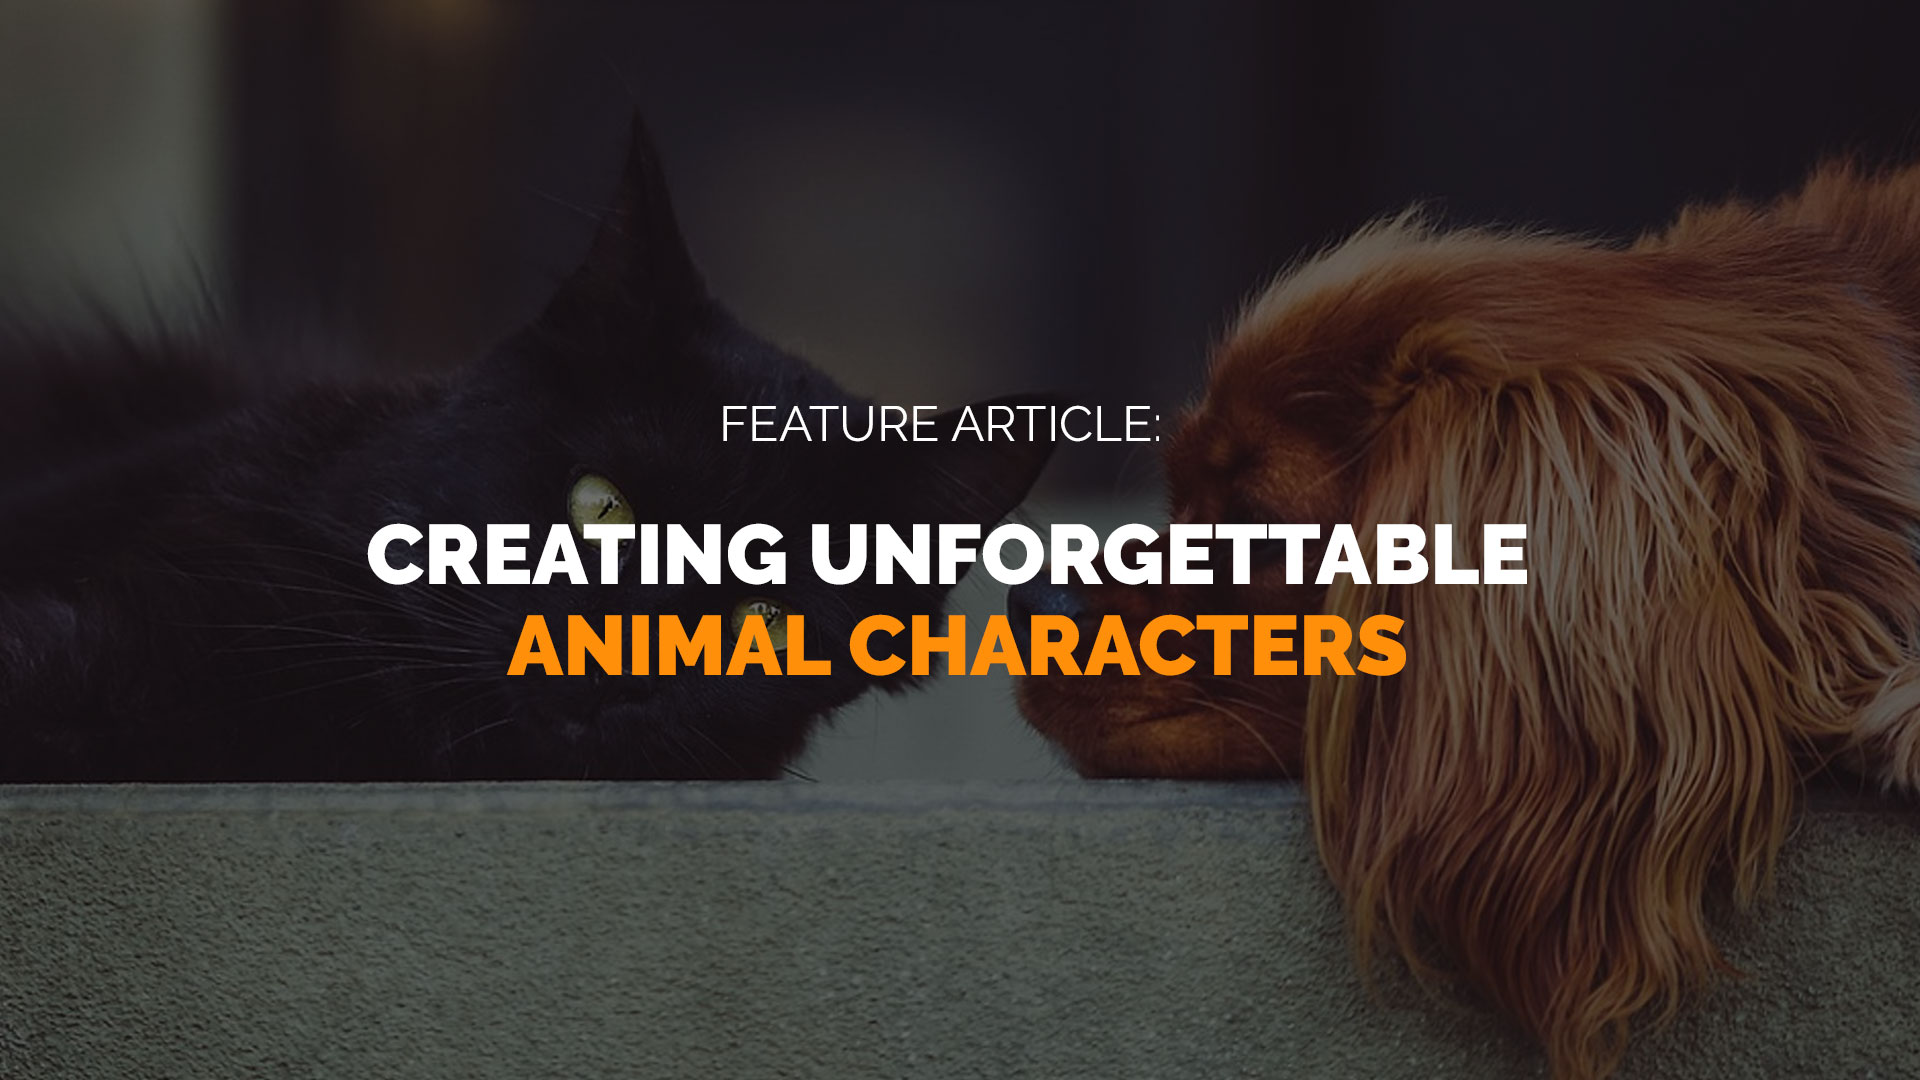 Feature-Article-Creating-Unforgettable-Animal-Characters banner